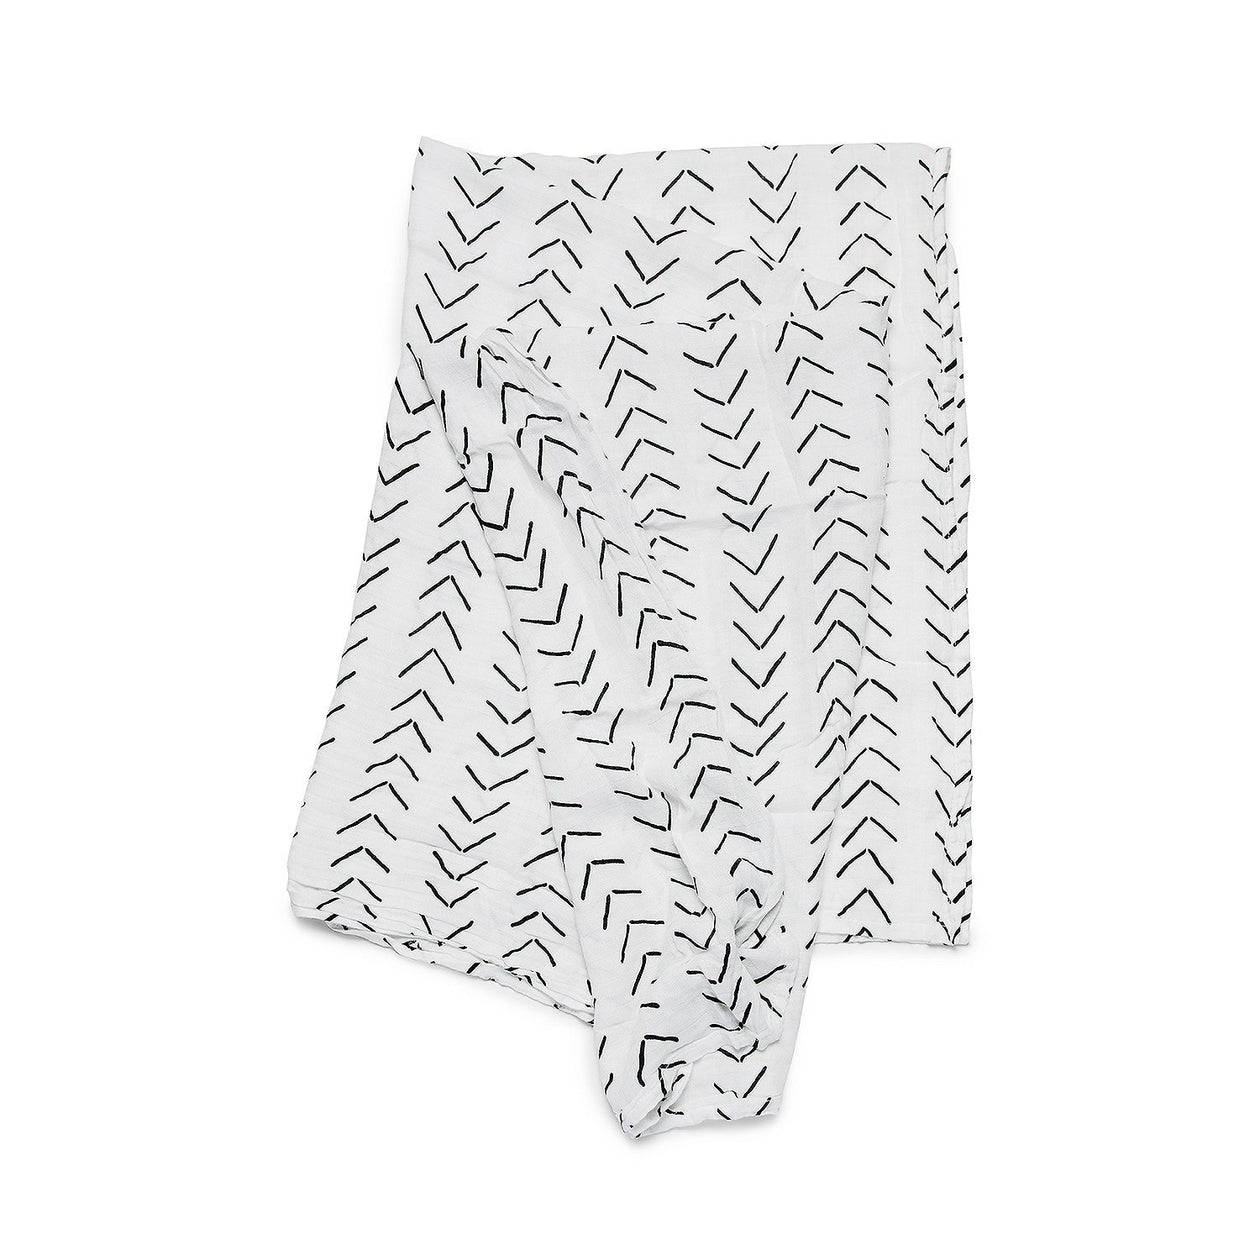 Muslin Swaddle - Arrows (Swaddle) by Loulou Lollipop